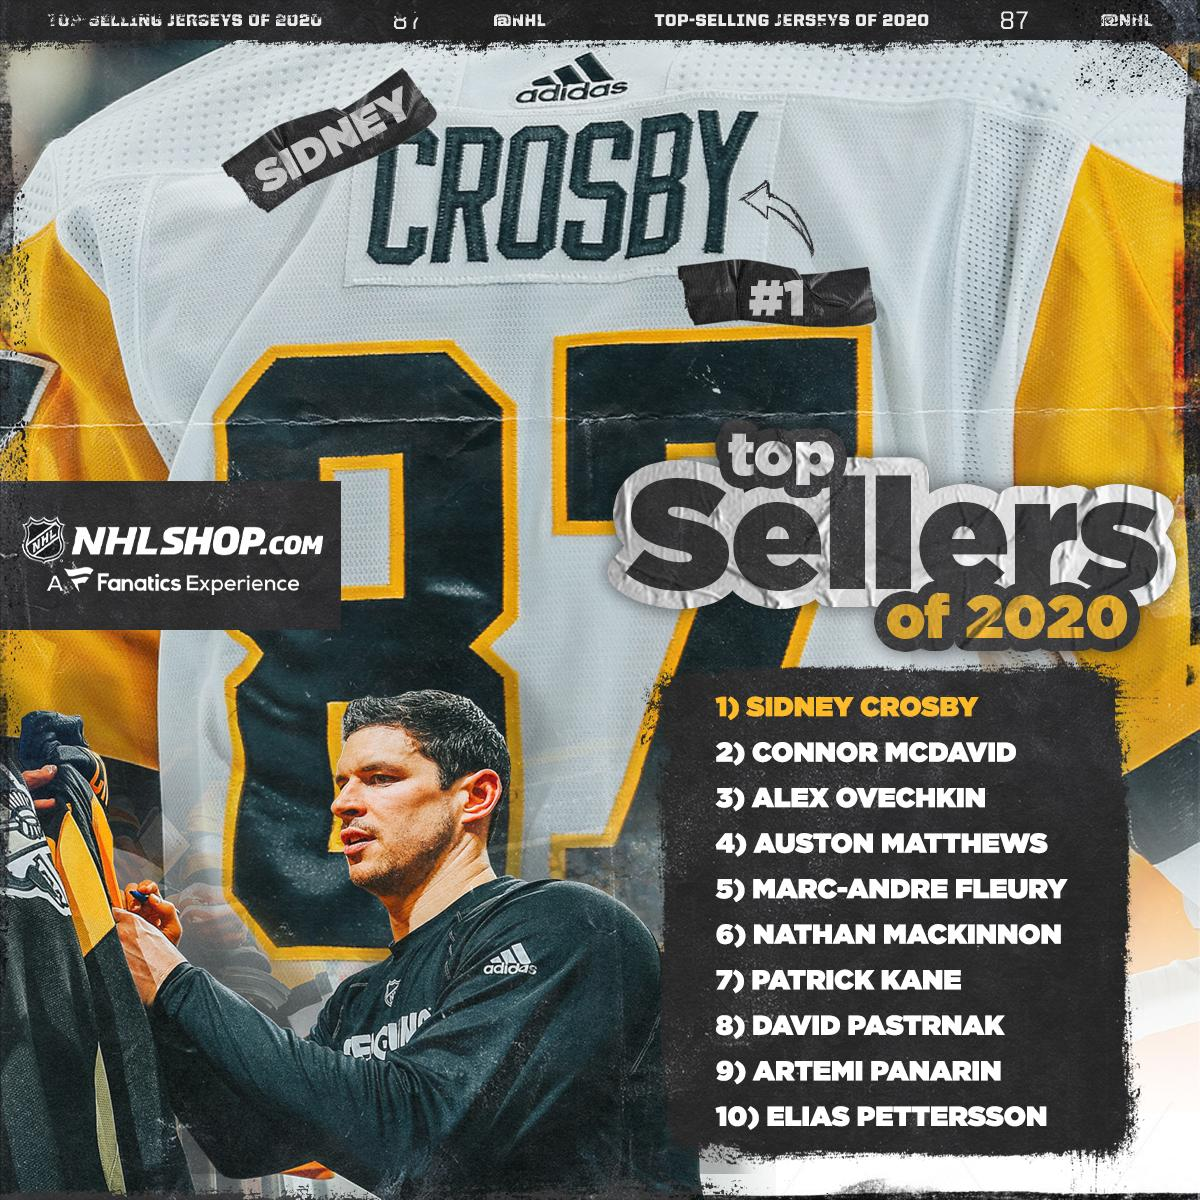 Sidney Crosby leads the list of top-selling @NHL_Shop jerseys for 2020.   Any surprises? 🤔 #NHLFaceOff